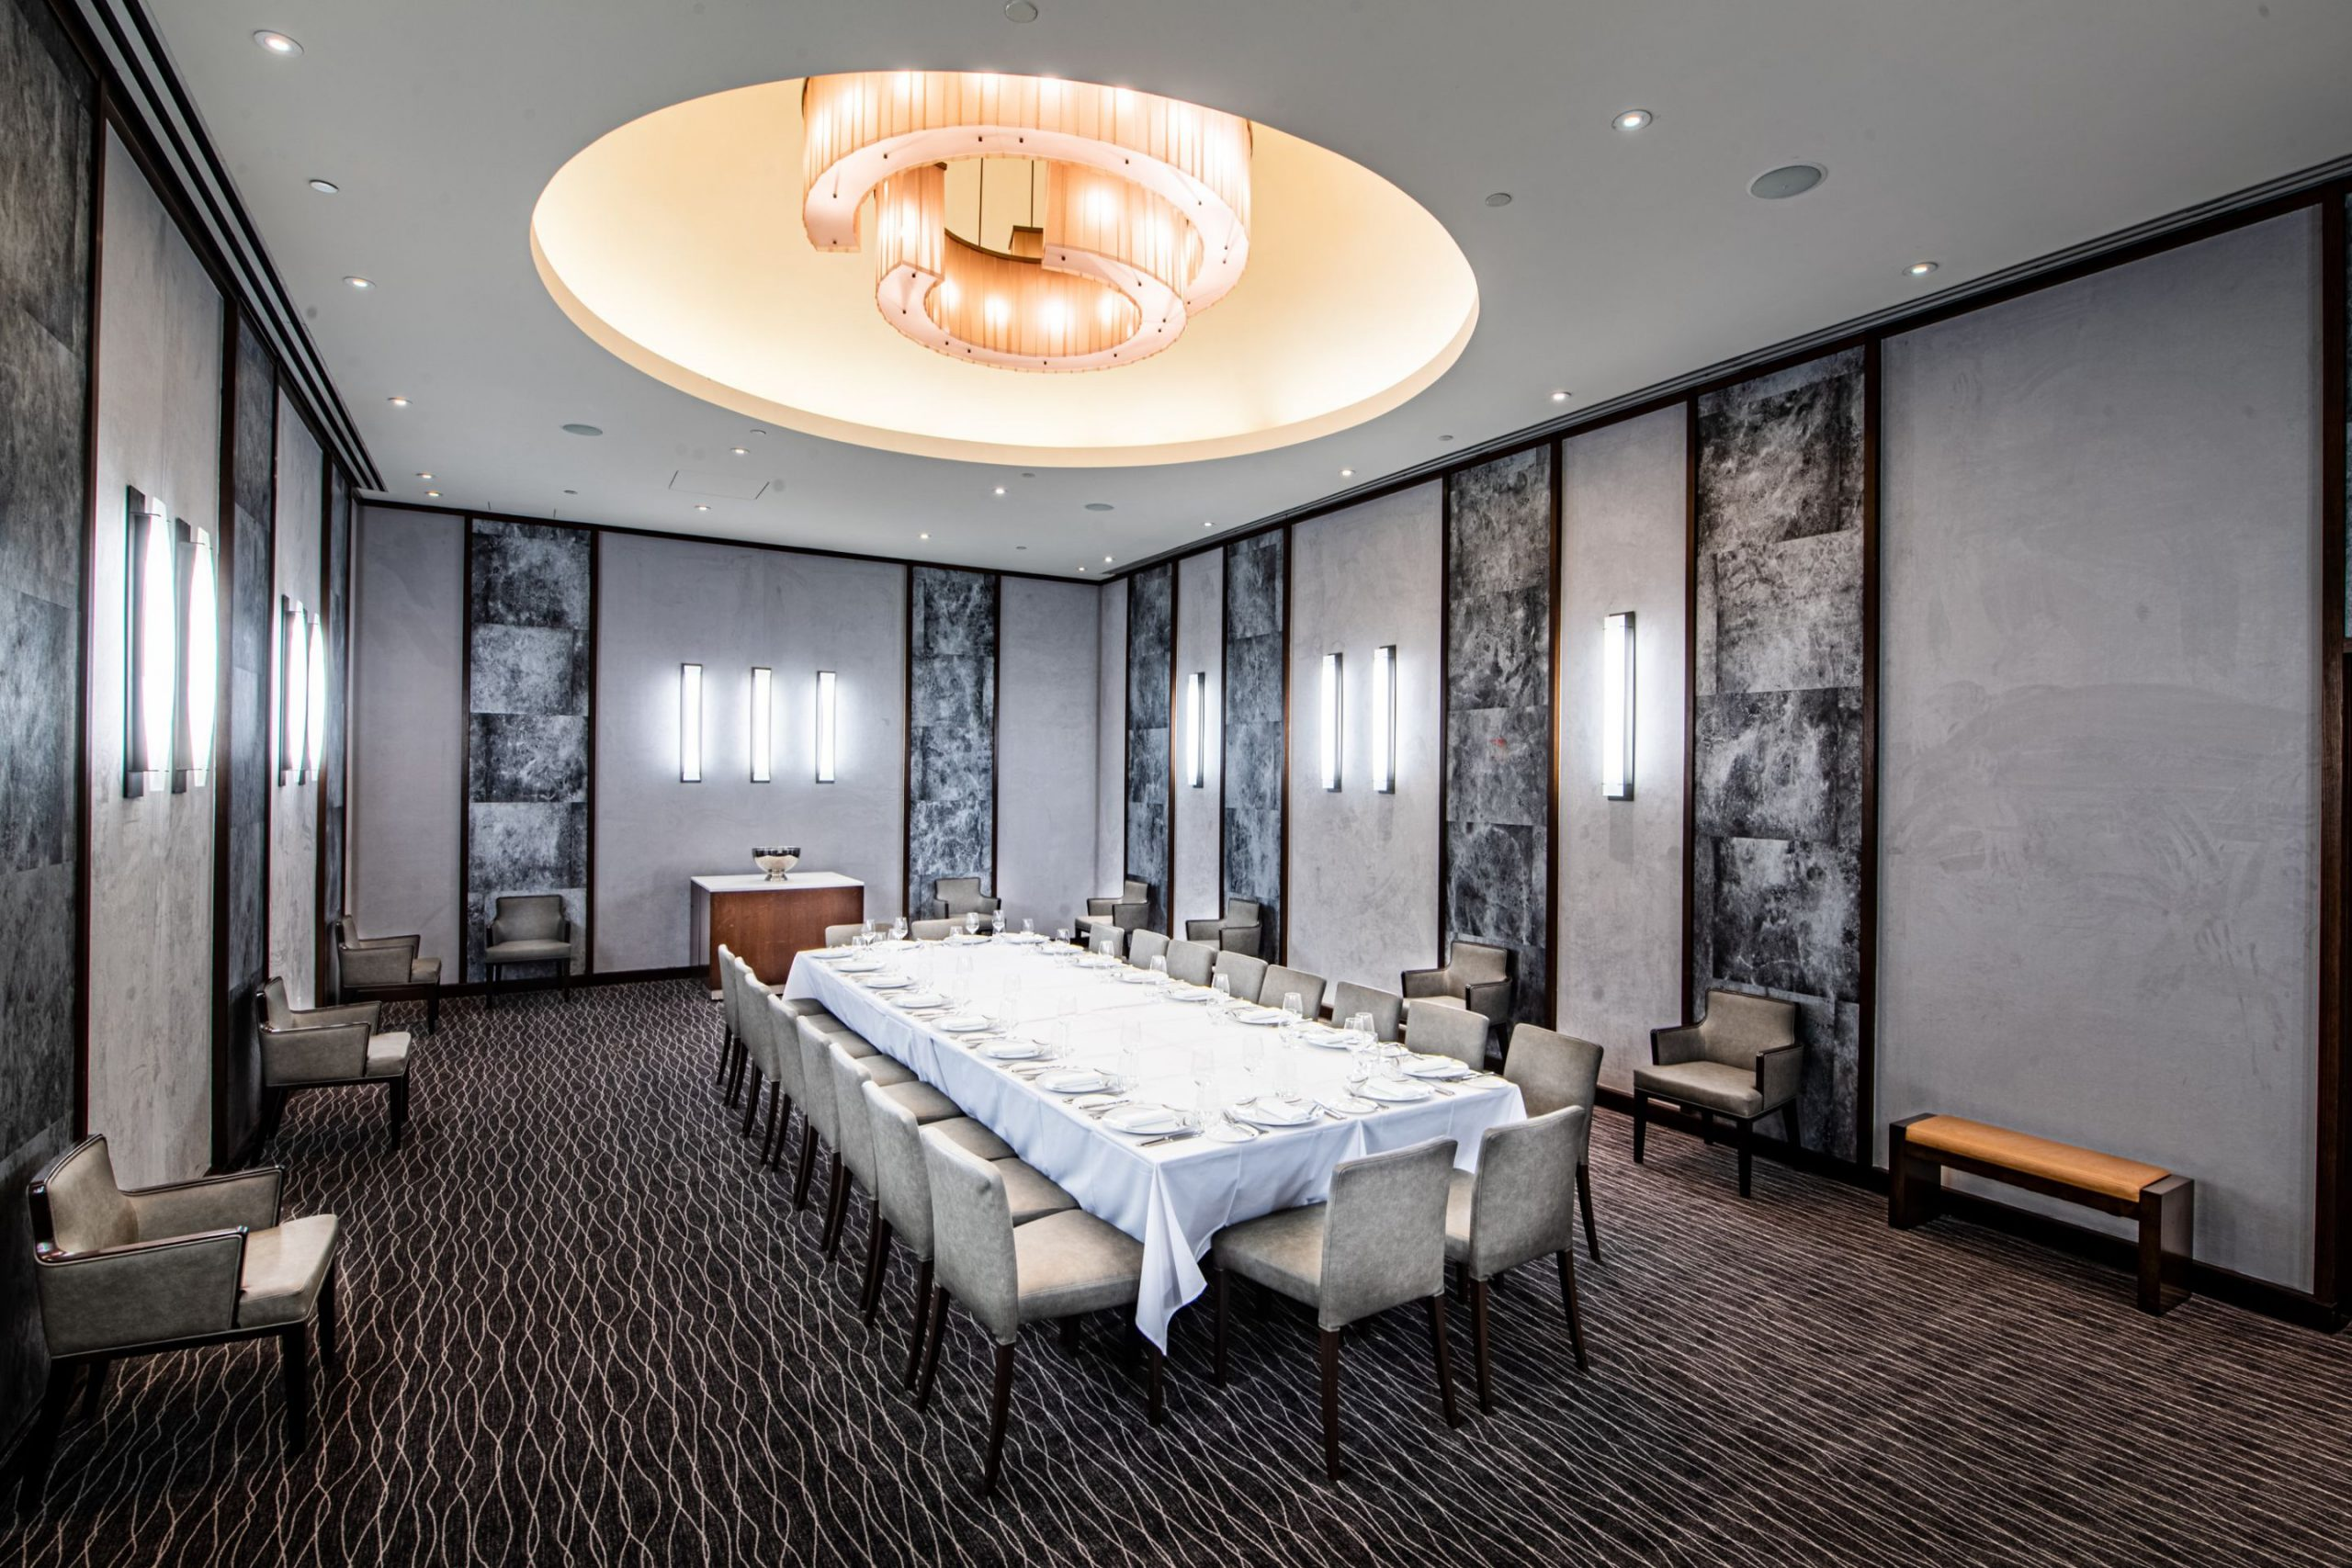 Large Dining room with concrete and marble walls and a long table with white tablecltoh